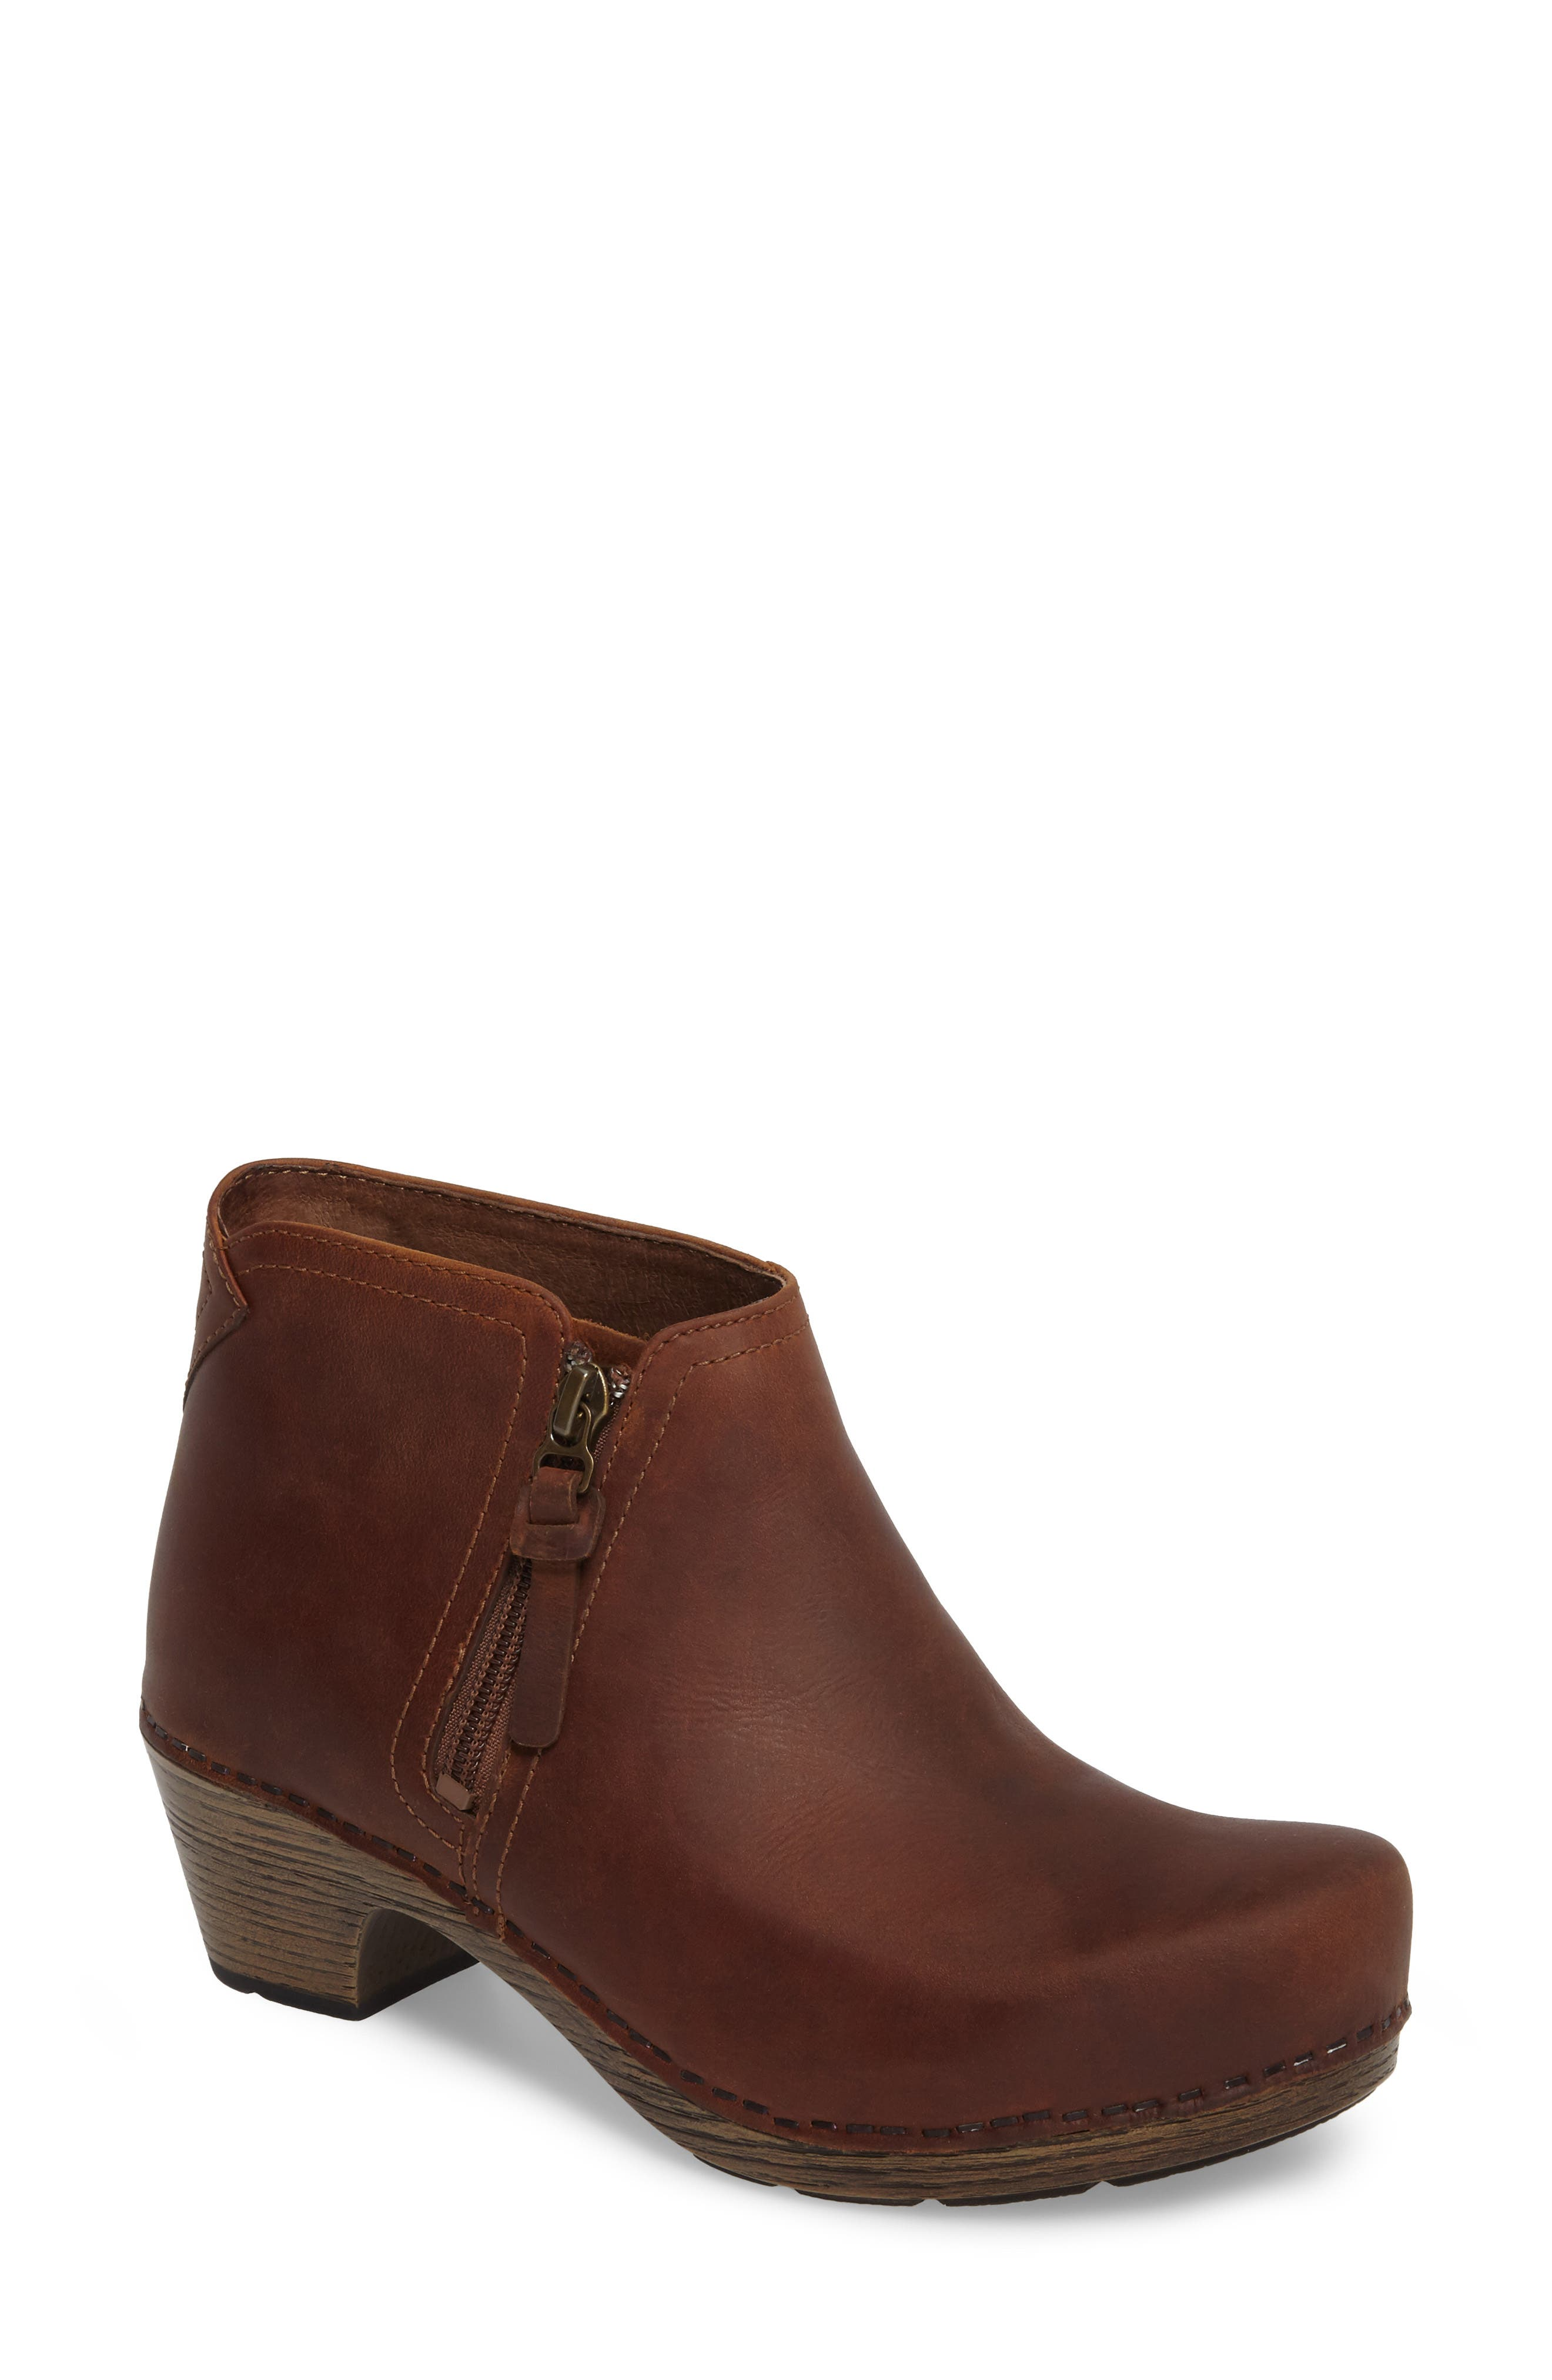 Alternate Image 1 Selected - Dansko Max Bootie (Women)